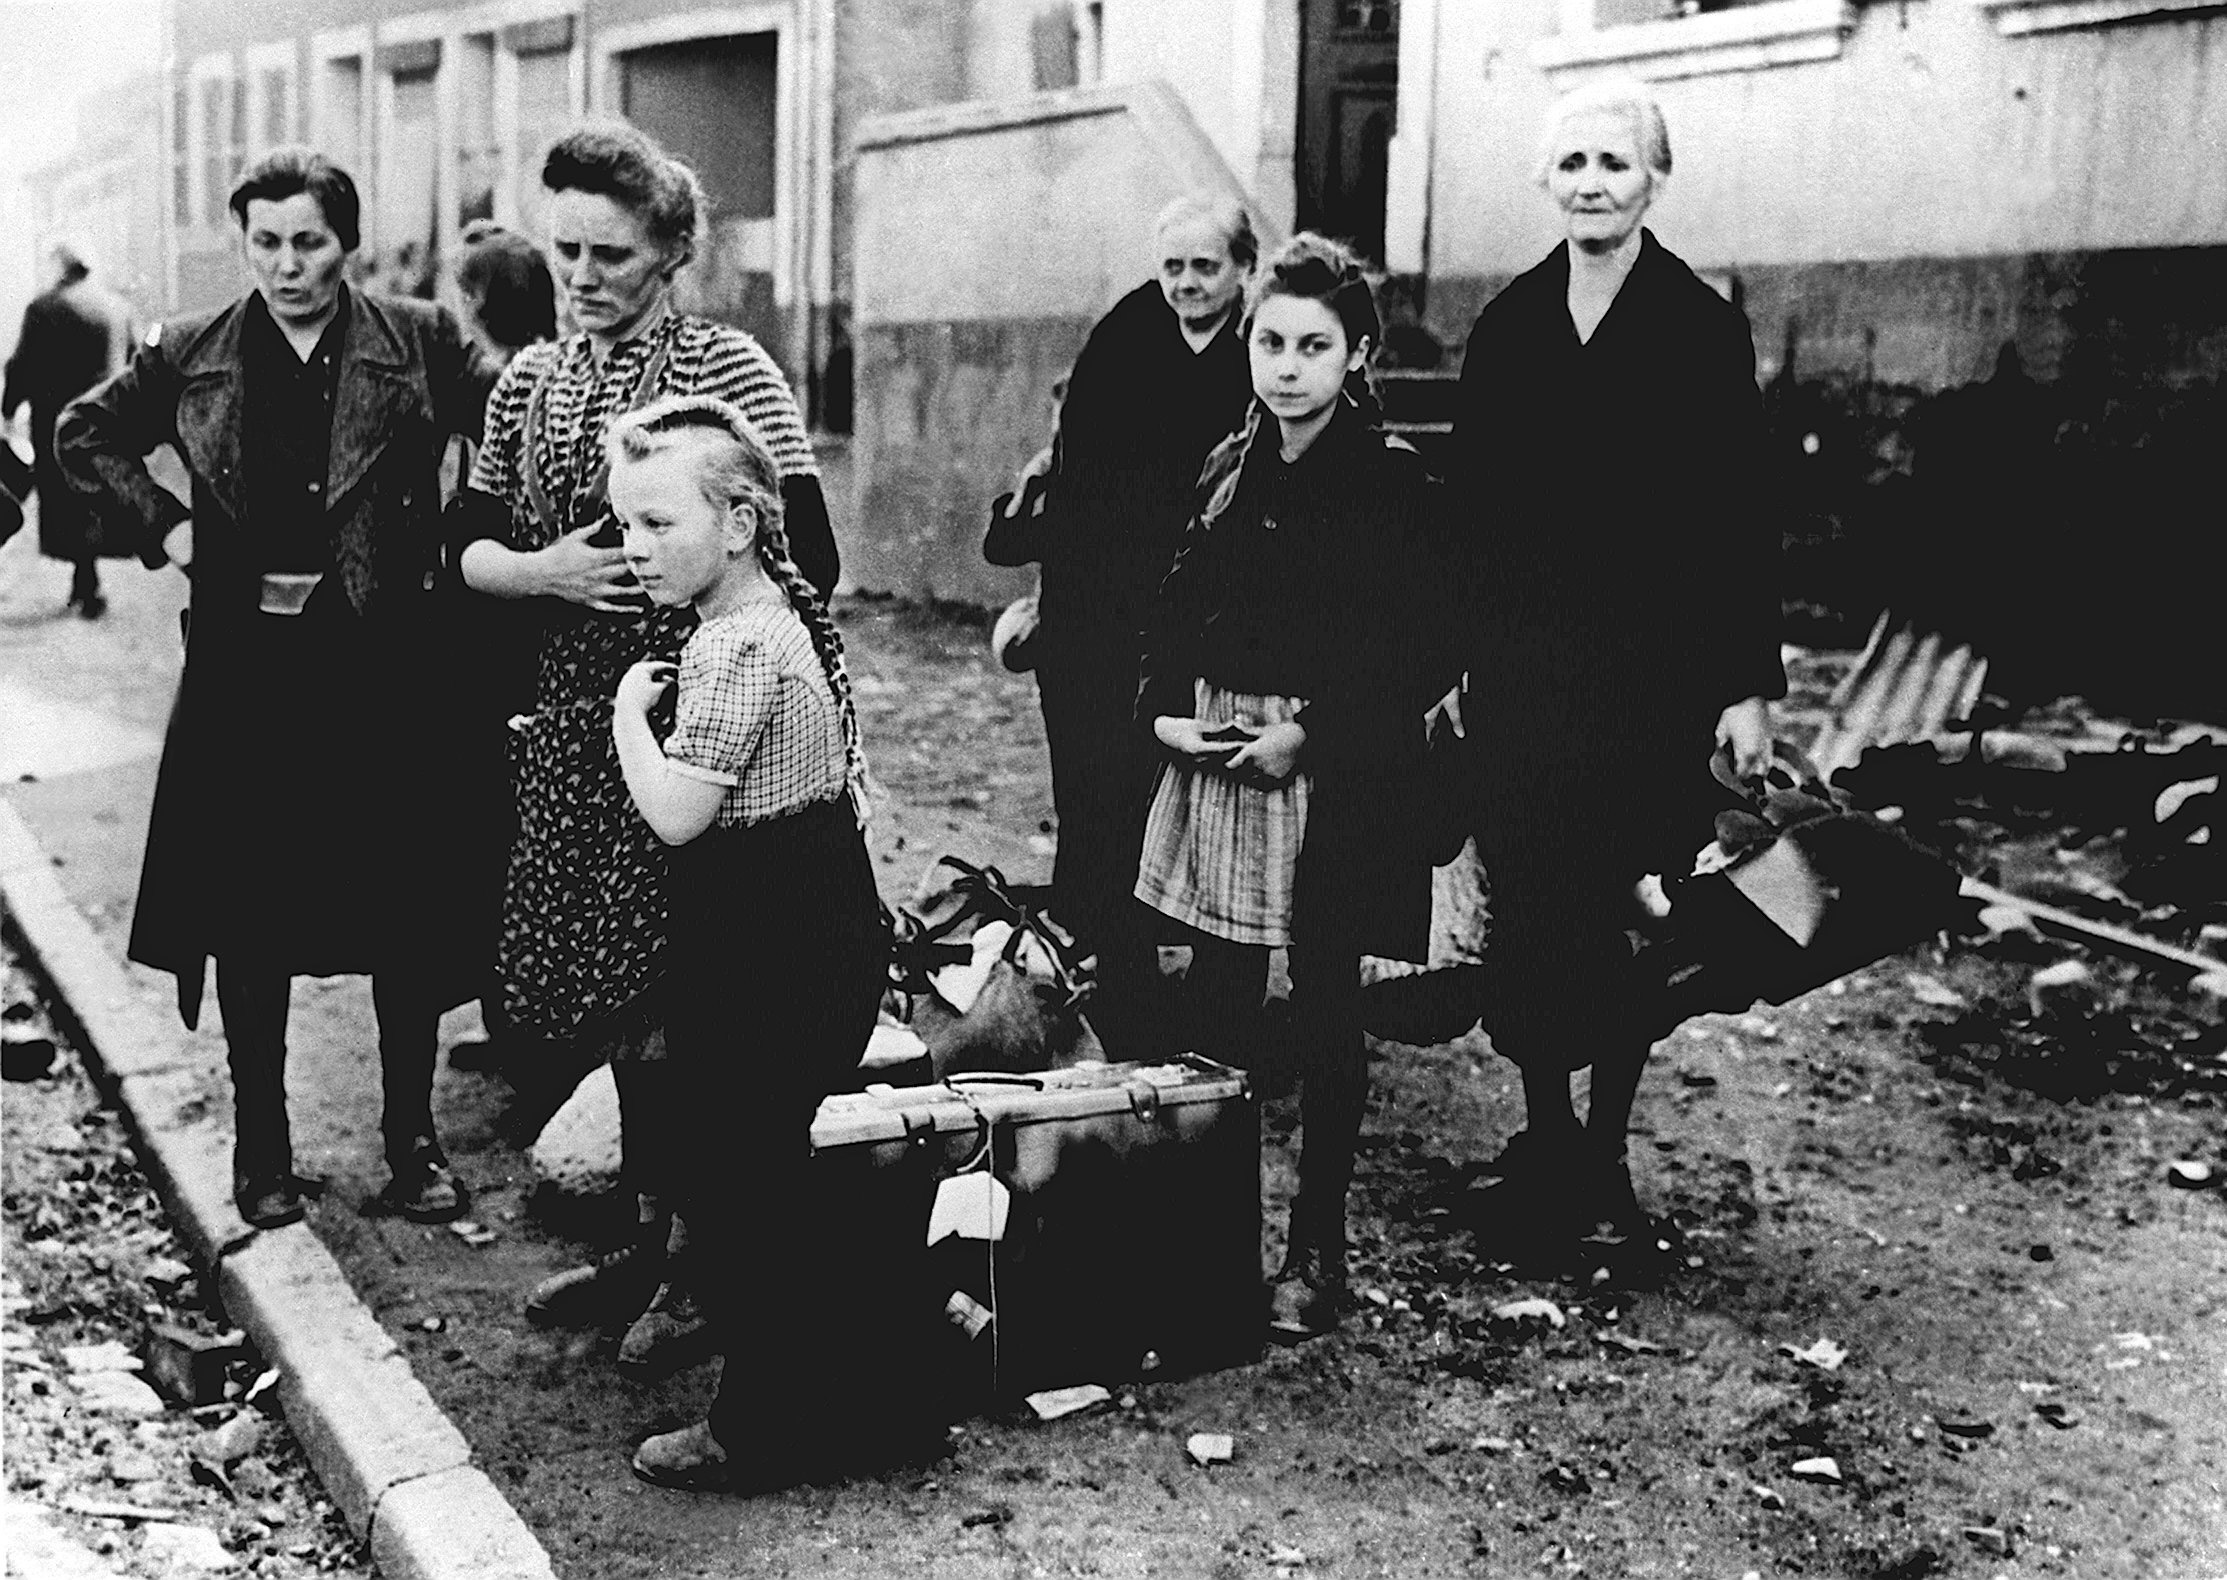 Women and children  standing at the roadside in 1945.